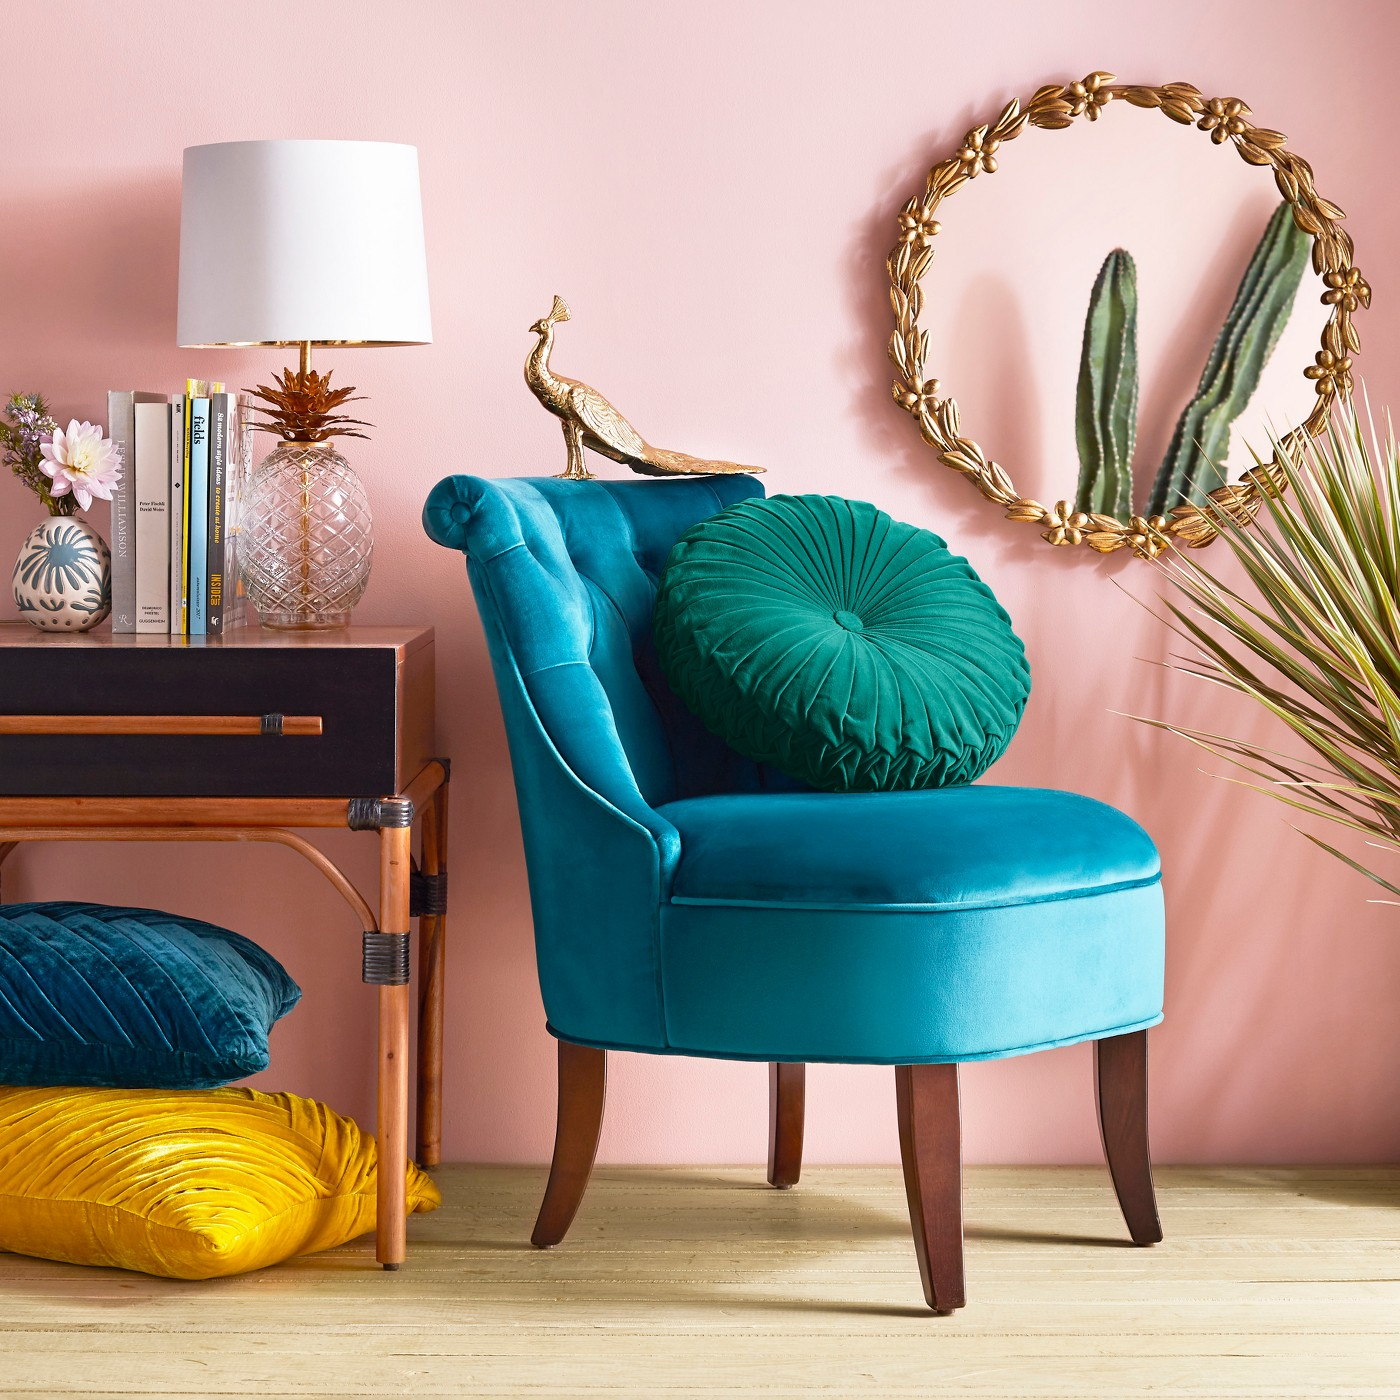 Decor Items You Need From Target